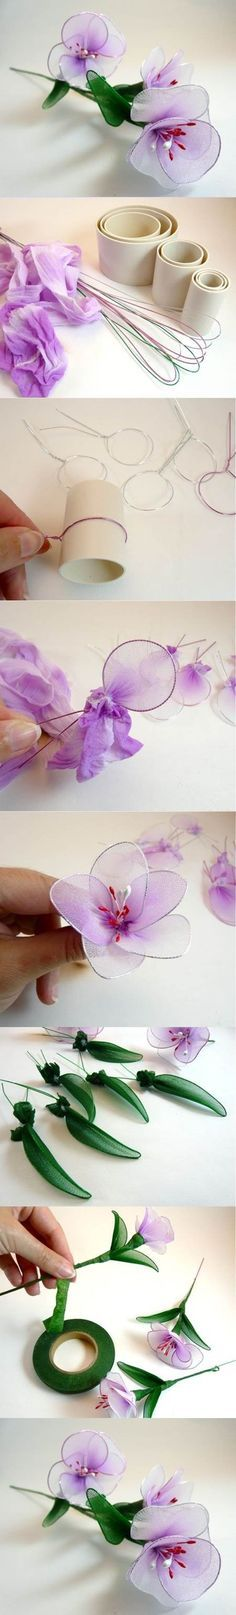 DIY Beautiful Nylon Flowers from Pantyhose and Tights | iCreativeIdeas.com Like Us on Facebook ==> https://www.facebook.com/icreativeideas